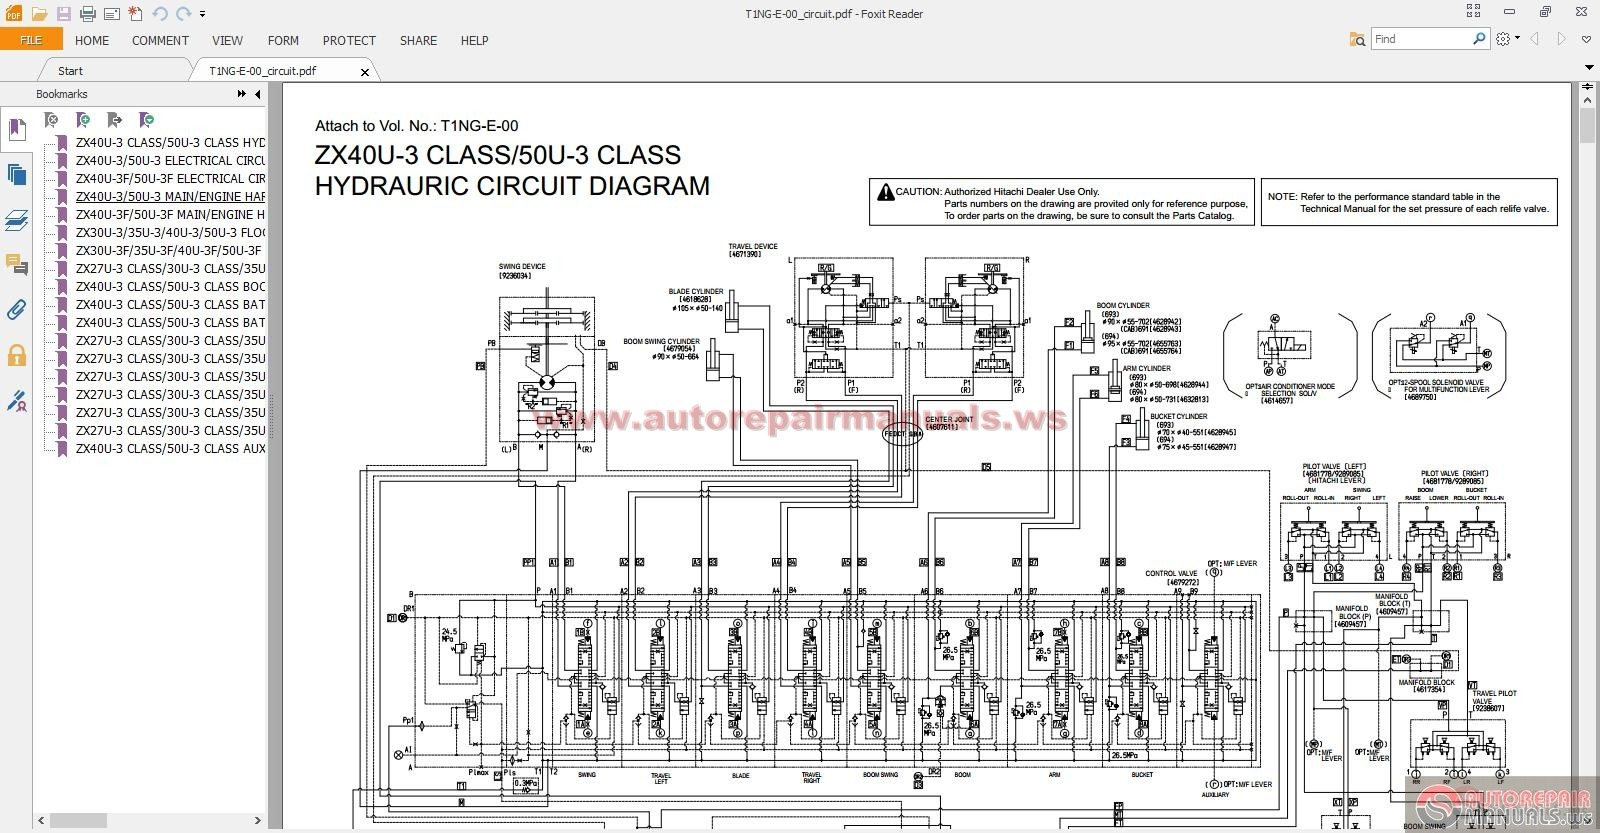 parts for caterpillar excavator hydraulics diagram motorcycle images of parts for caterpillar excavator hydraulics diagram caterpillar hydraulic schematic symbols hydraulic circuit diagrams